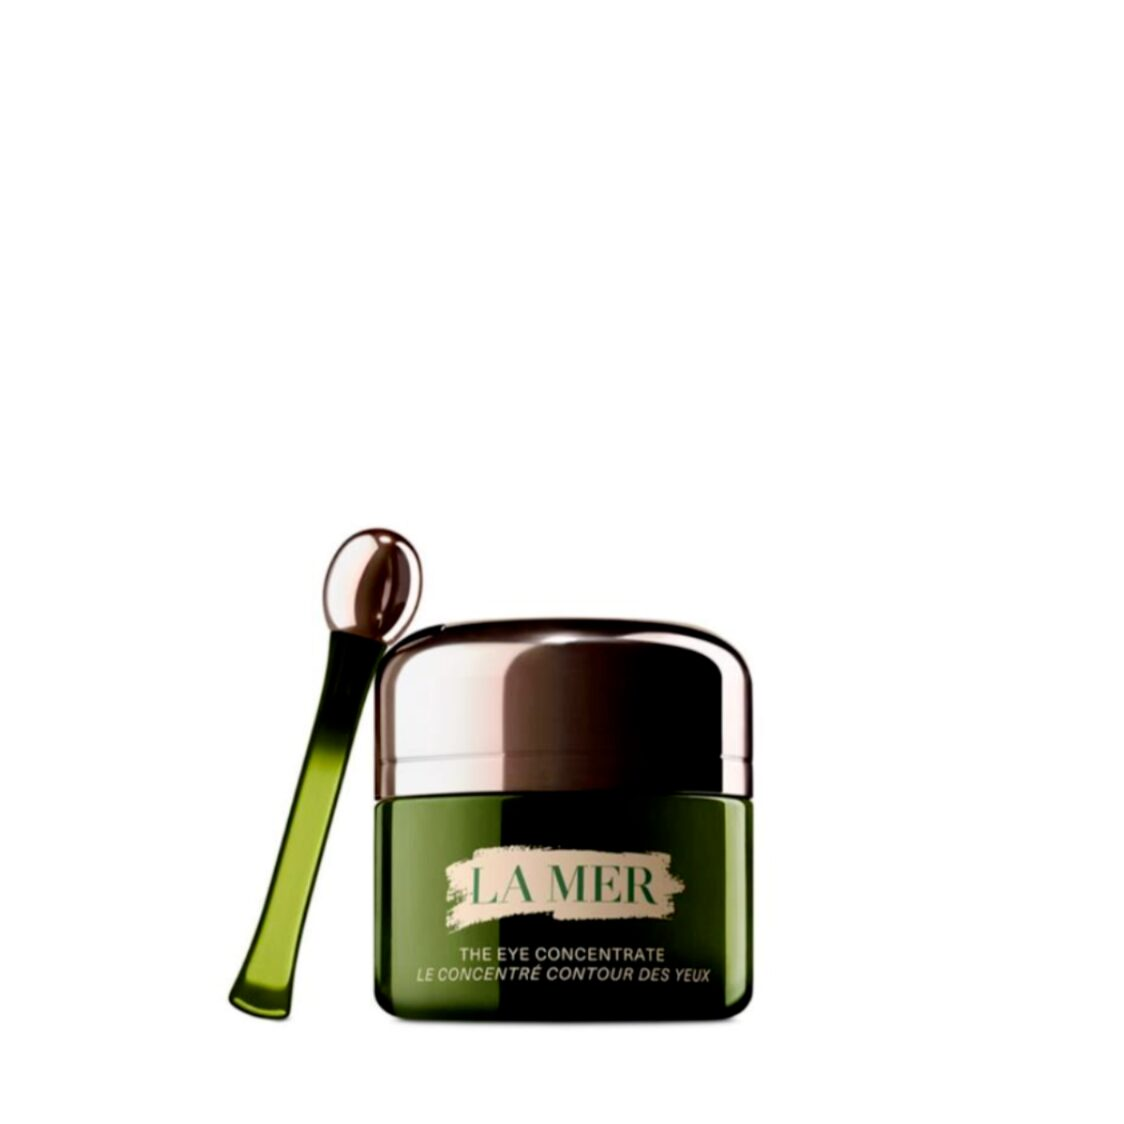 La Mer The Eye Concentrate 15ml